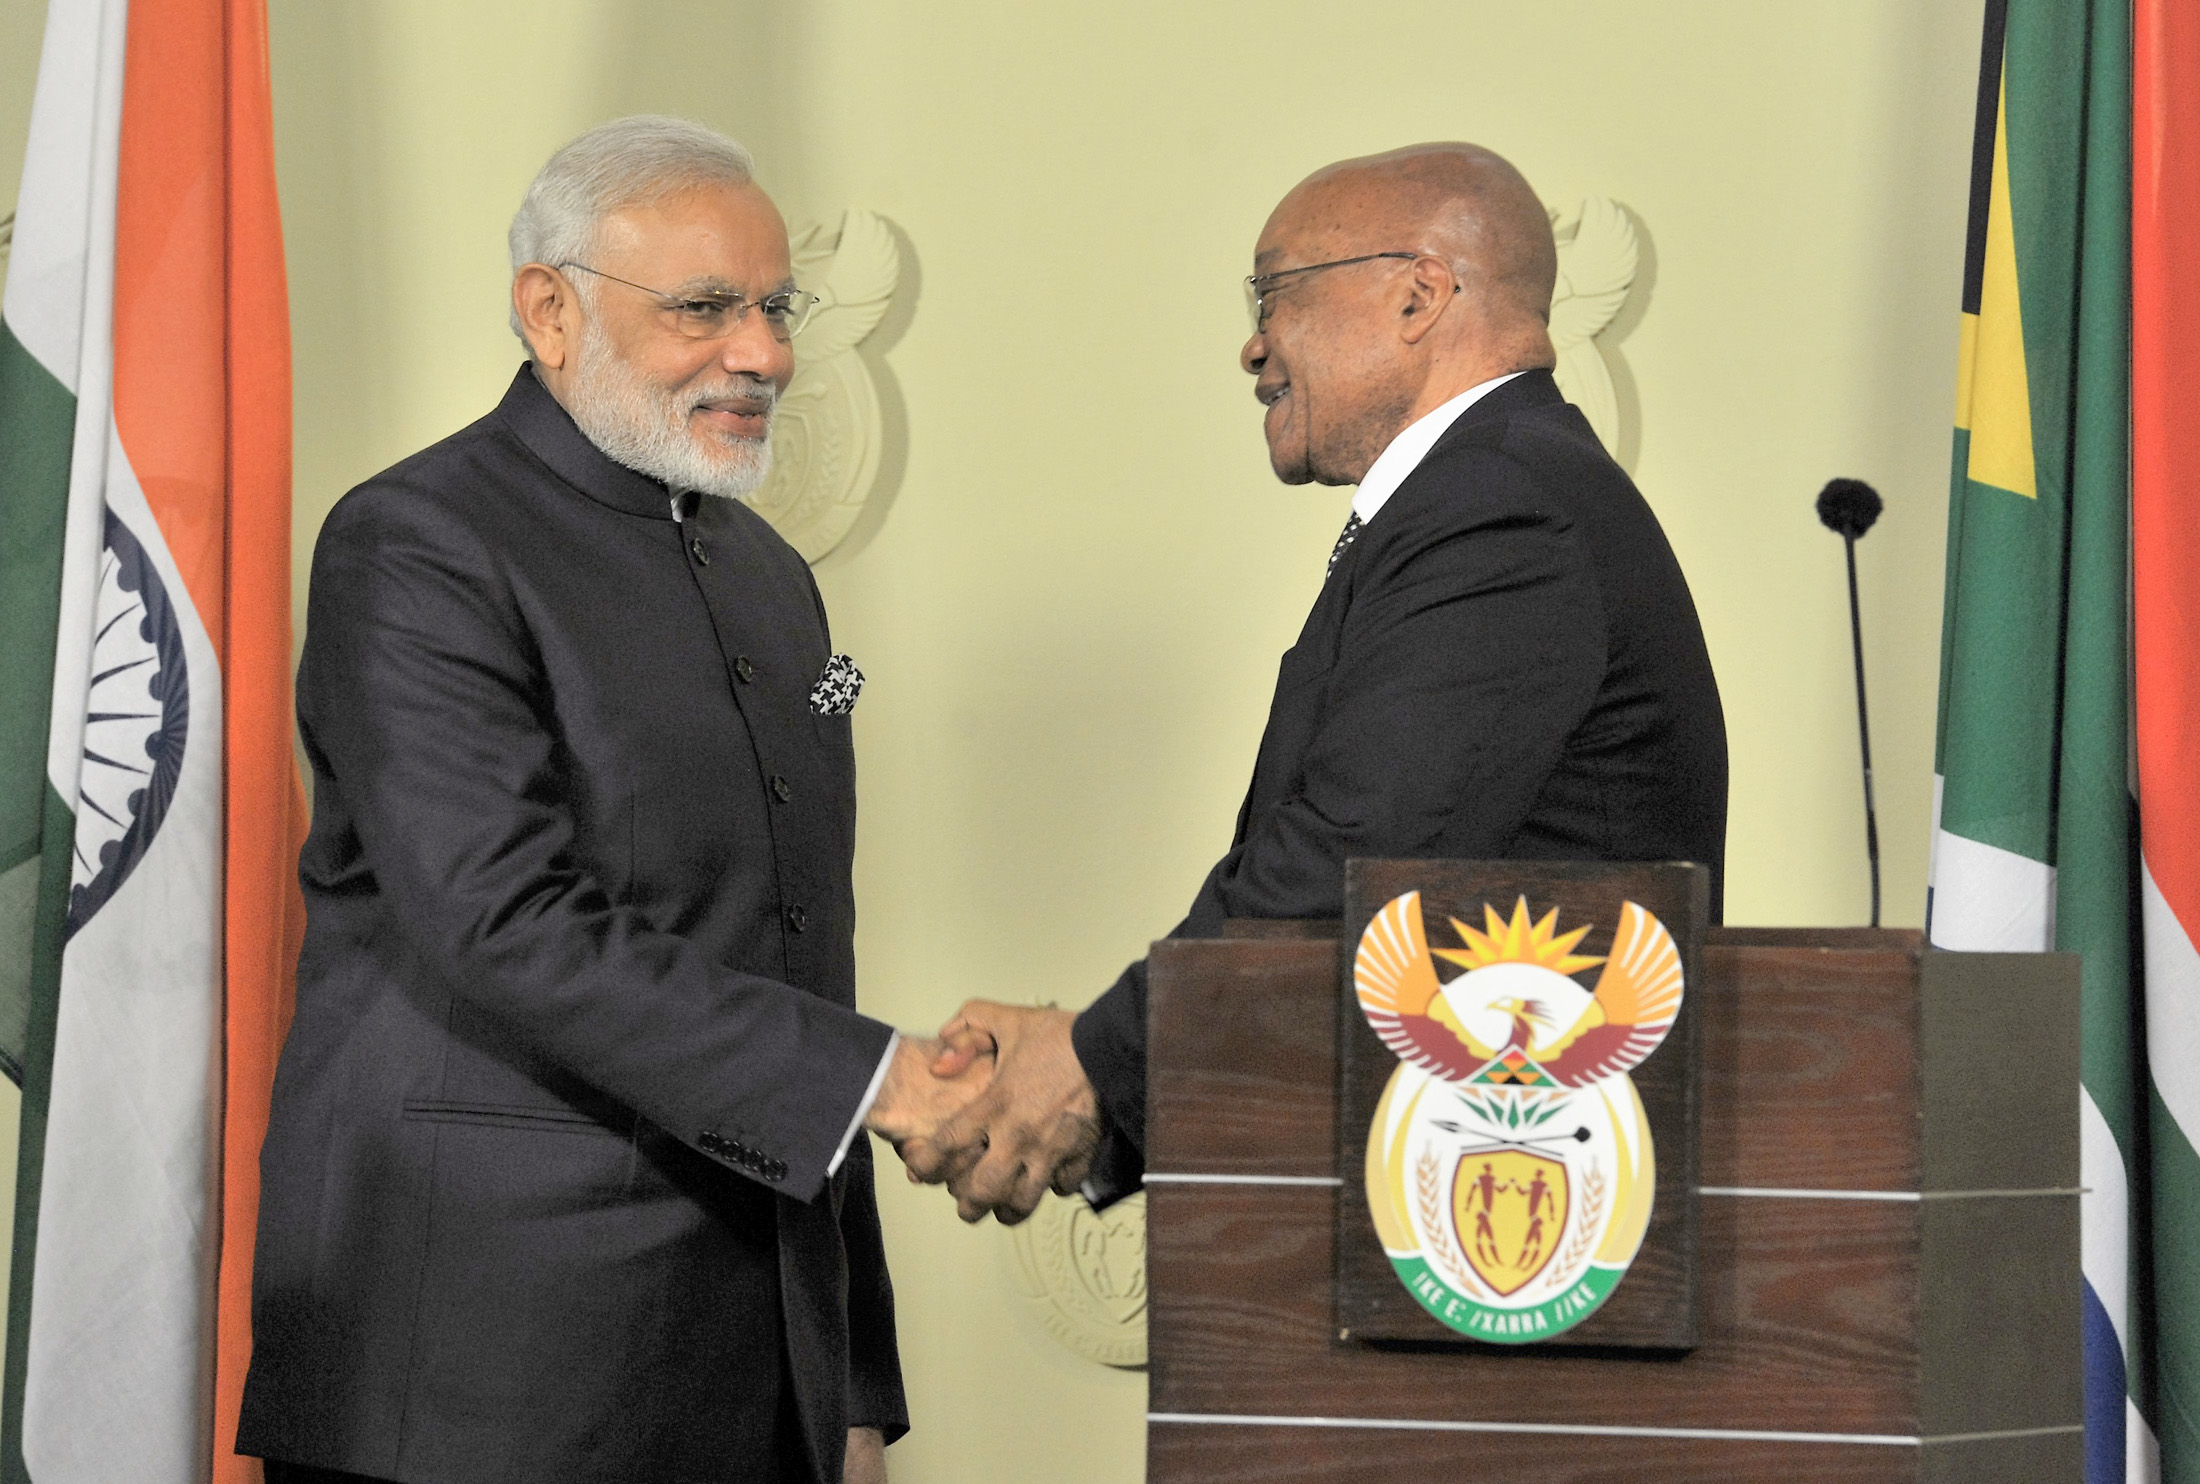 The Prime Minister, Shri Narendra Modi and the President of the Republic of South Africa, Mr. Jacob Zuma, during the Joint Press Statement, at Union Buildings, in Pretoria, South Africa on July 08, 2016.